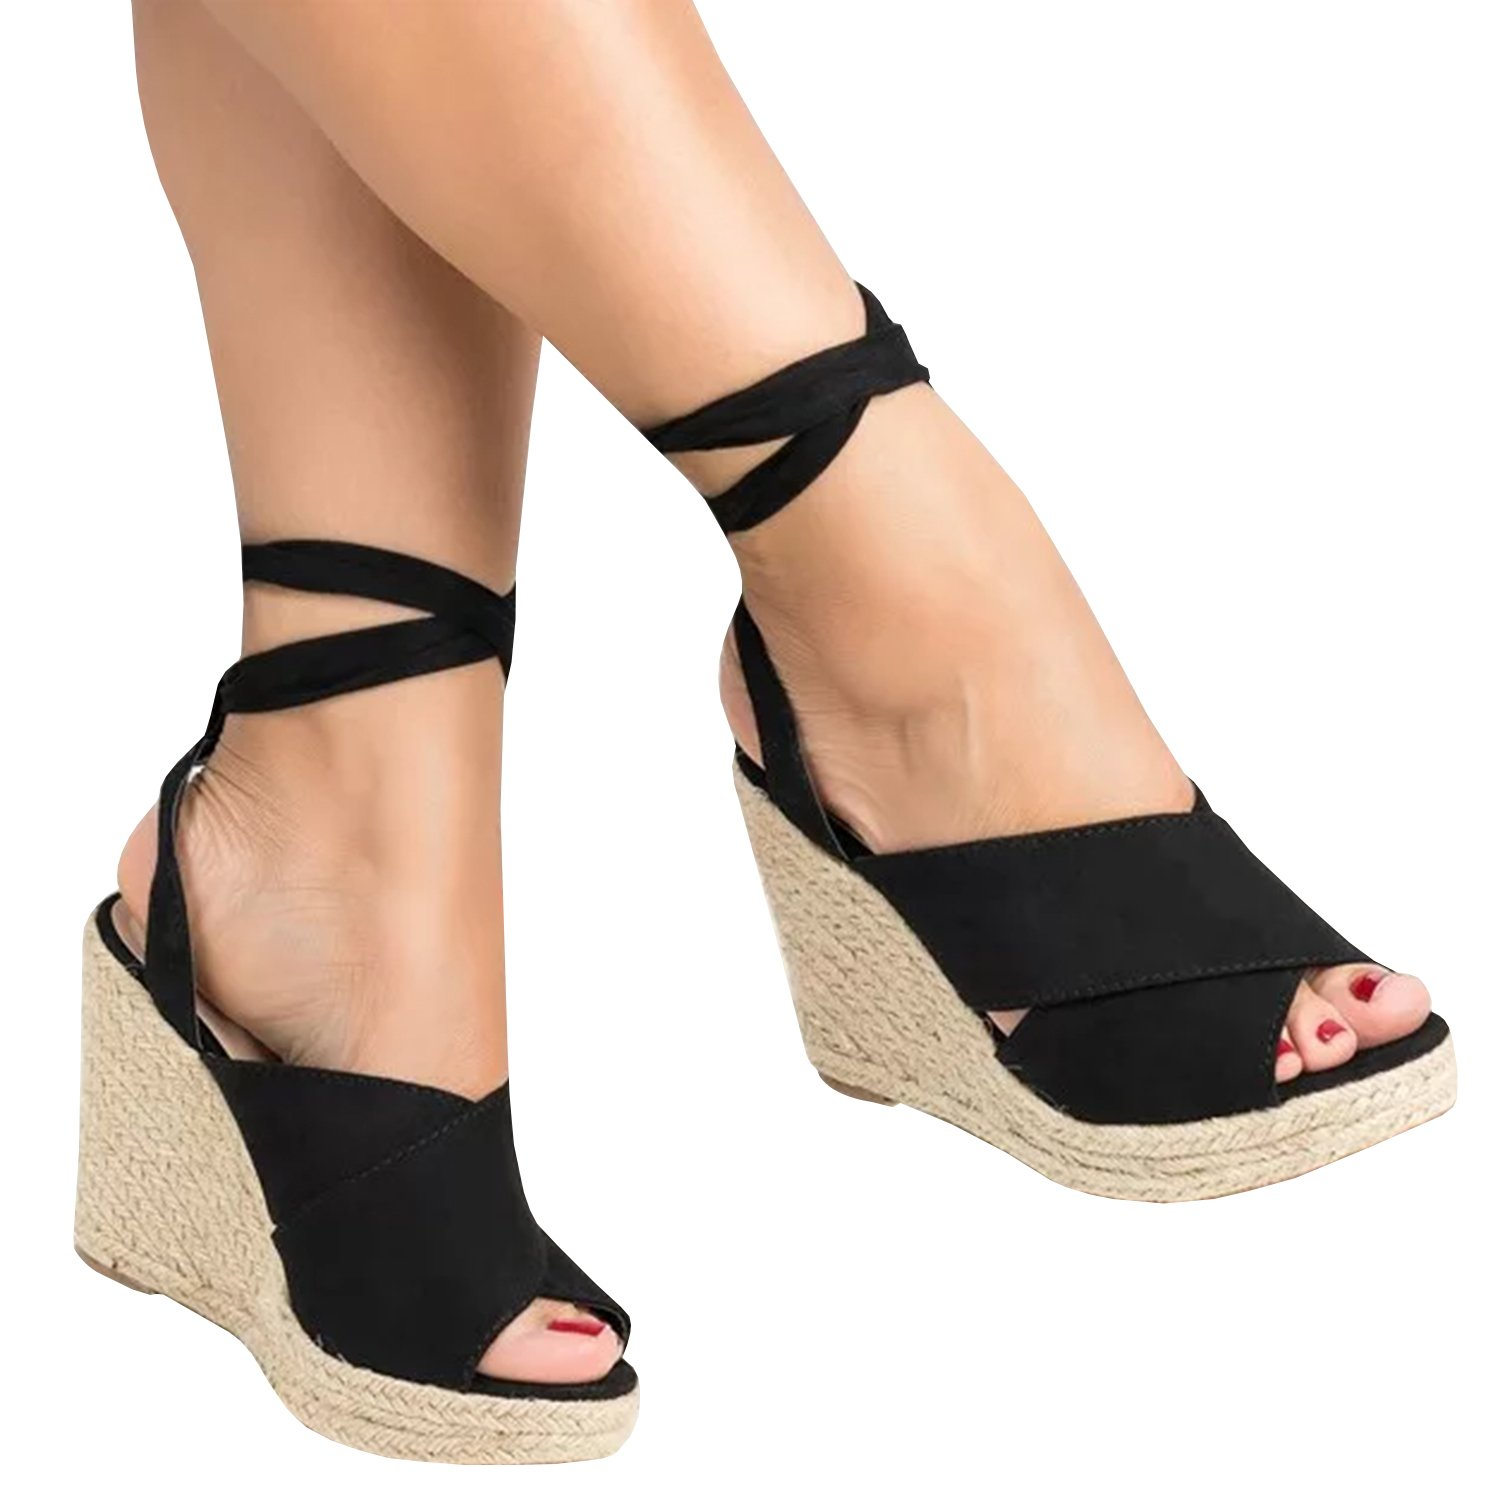 a703b66846 HIGH QUALITY | Suede leather uppers and espadrille sole high heel platform  shoes. Comfortable and durable sandals ...